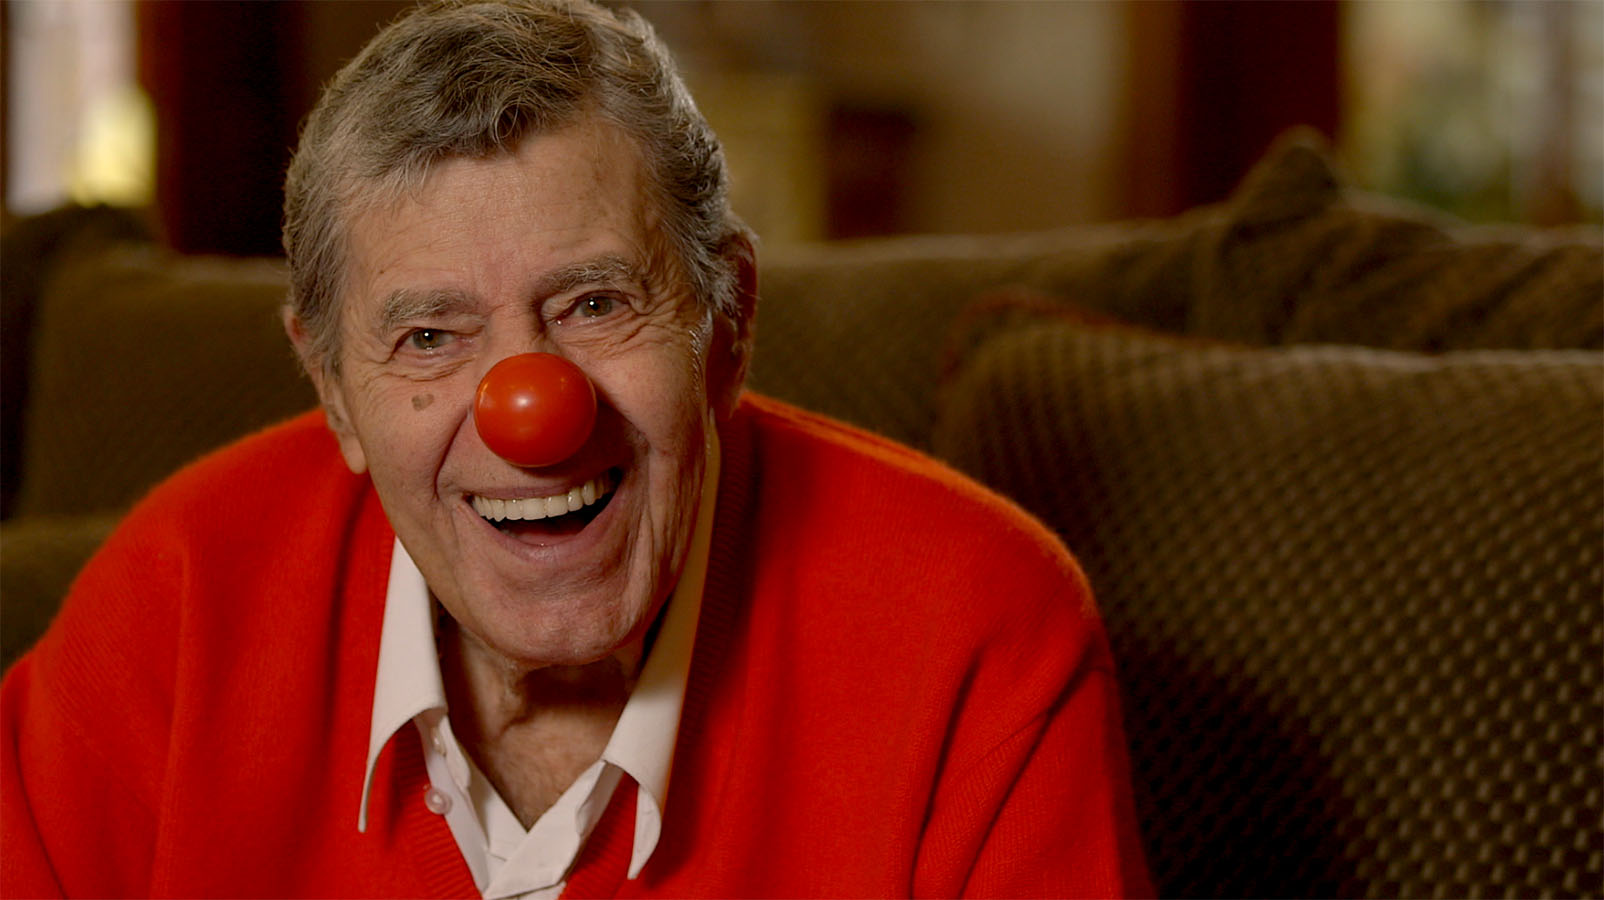 Jerry Lewis, 91, passes away